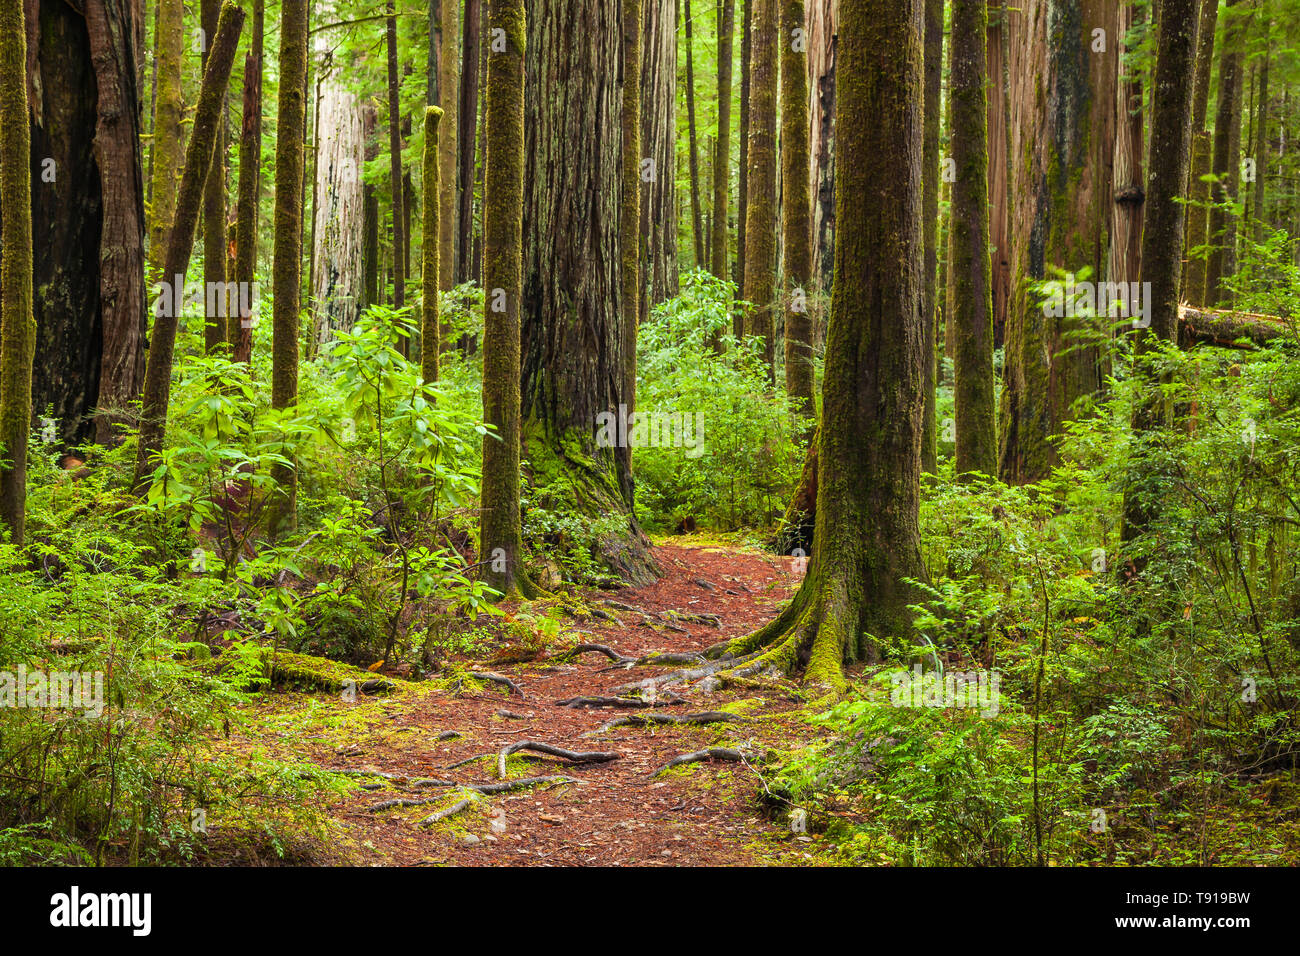 Trail through redwood forest. Jedediah Smith State Park, California, USA - Stock Image